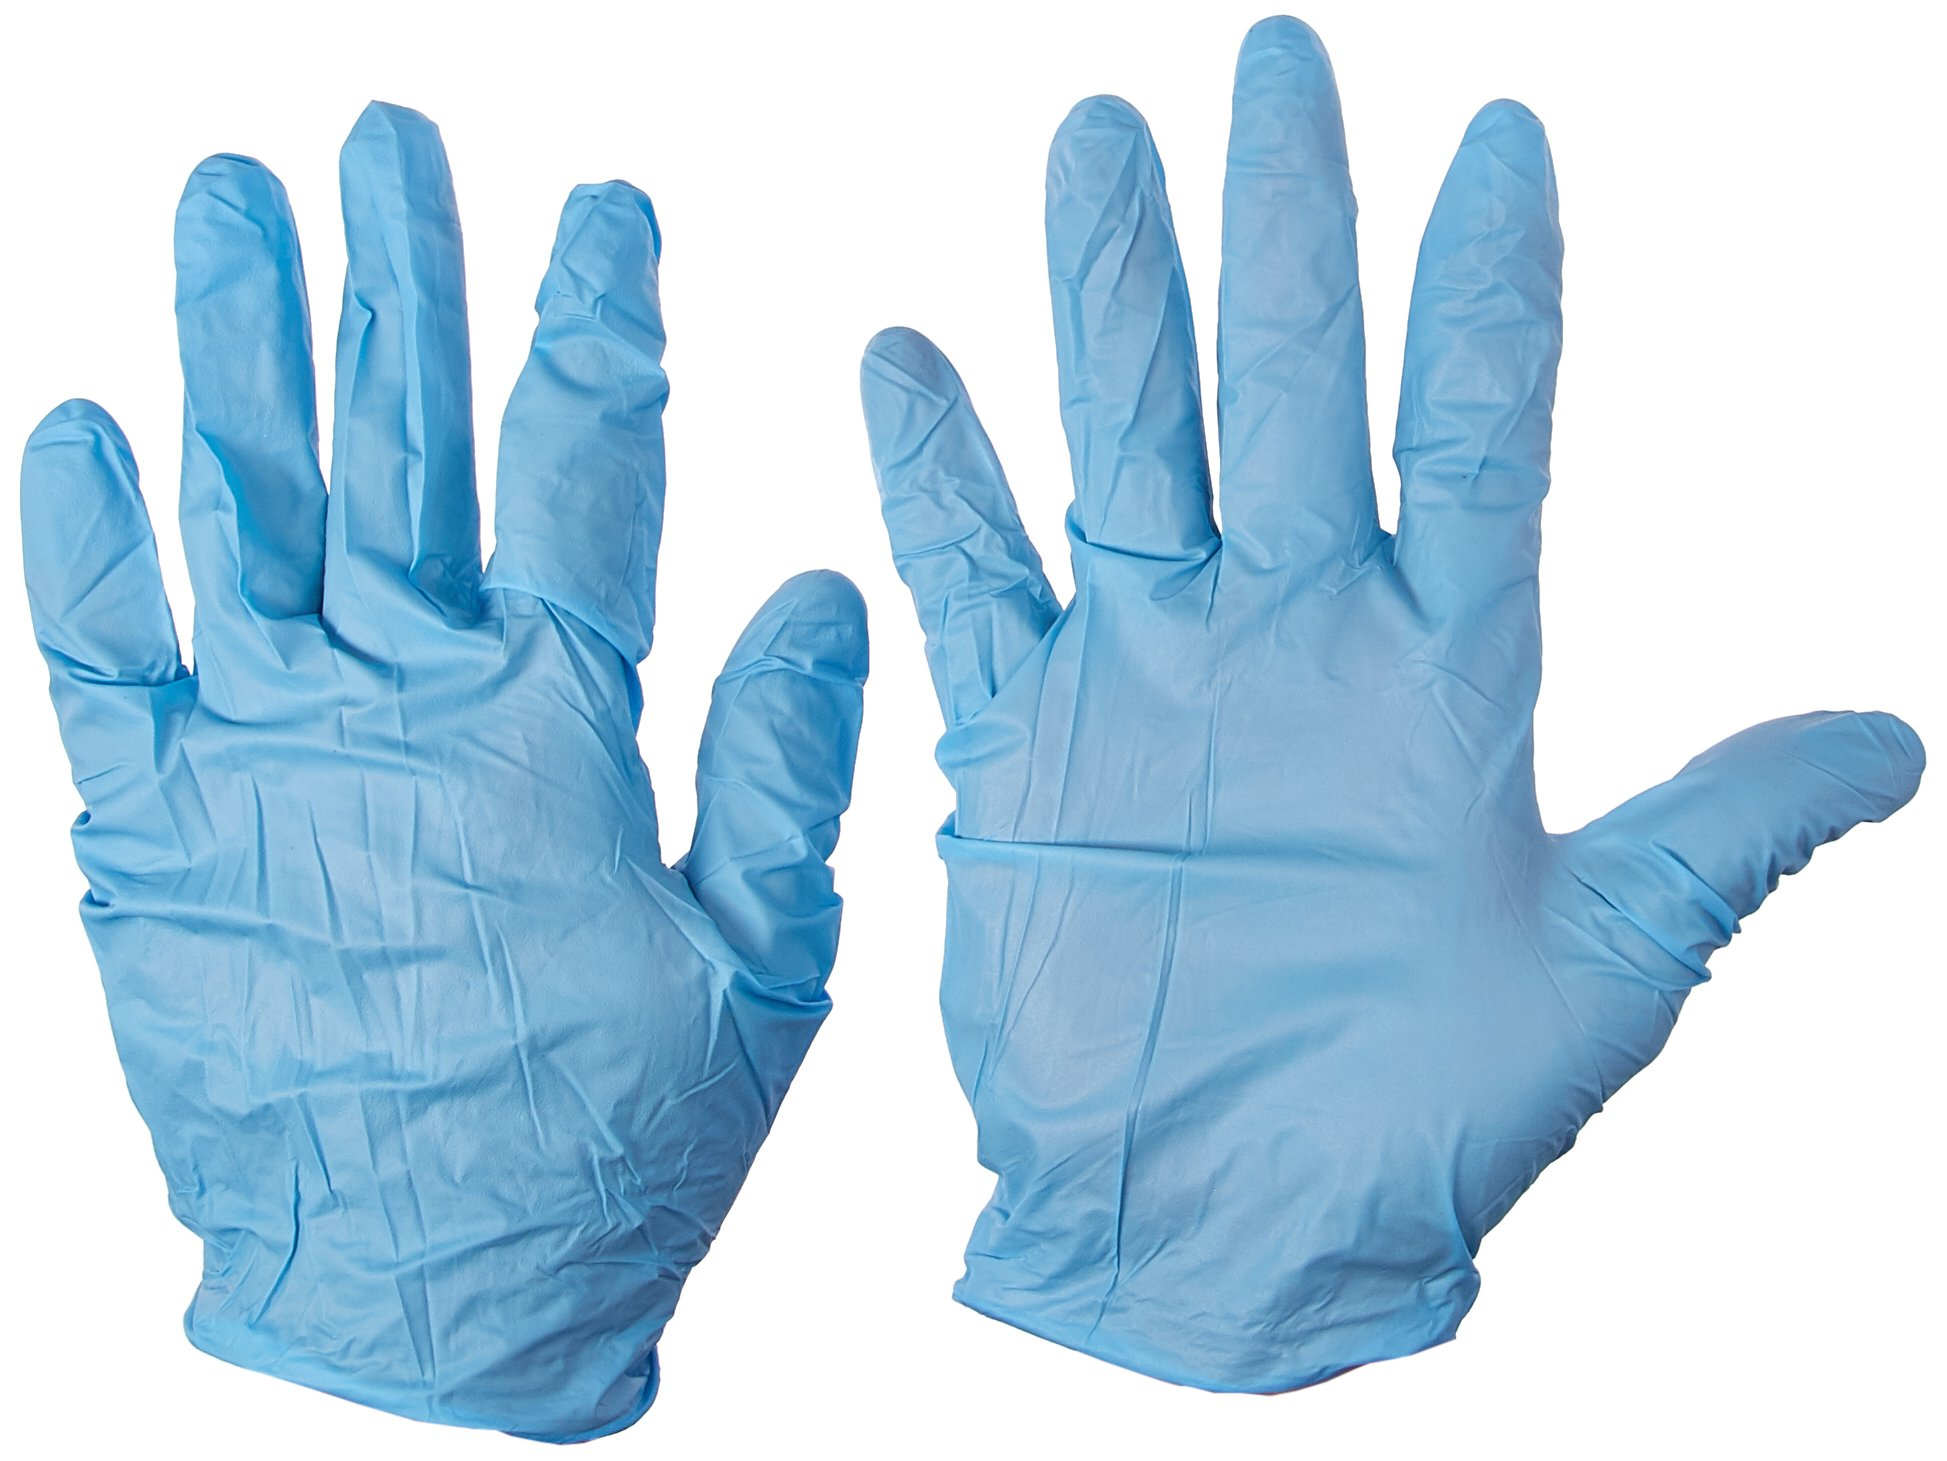 Cardinal Health Esteem 8814NXXB Nitrile Stretchy Micro Textured Examination Gloves, Size XX-Large (Case of 1500) by Cardinal Health (Image #1)